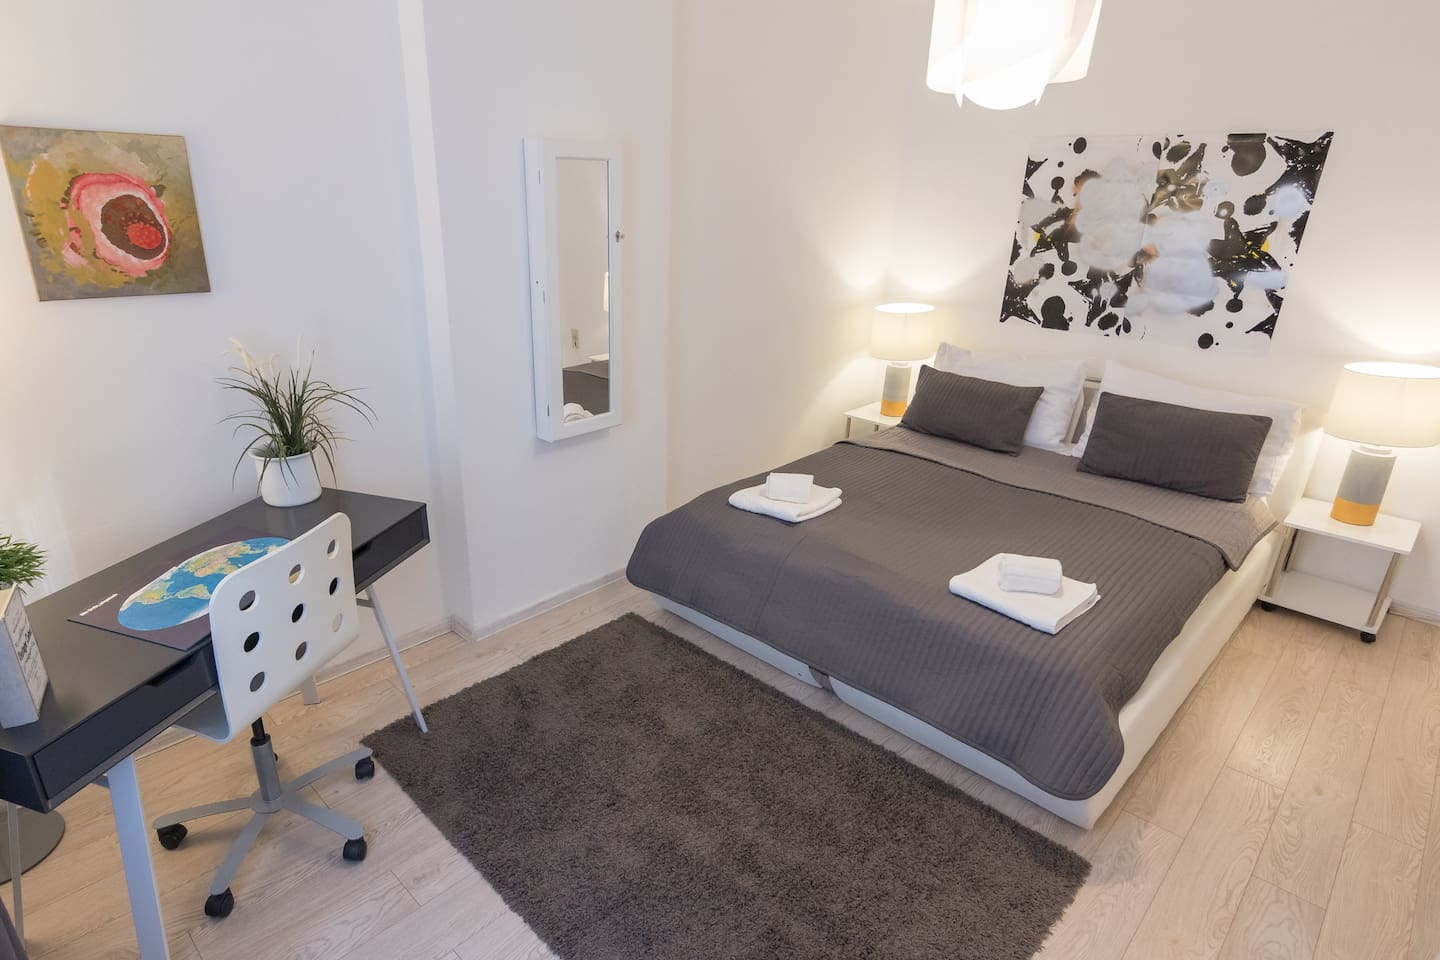 Bed room - double bed